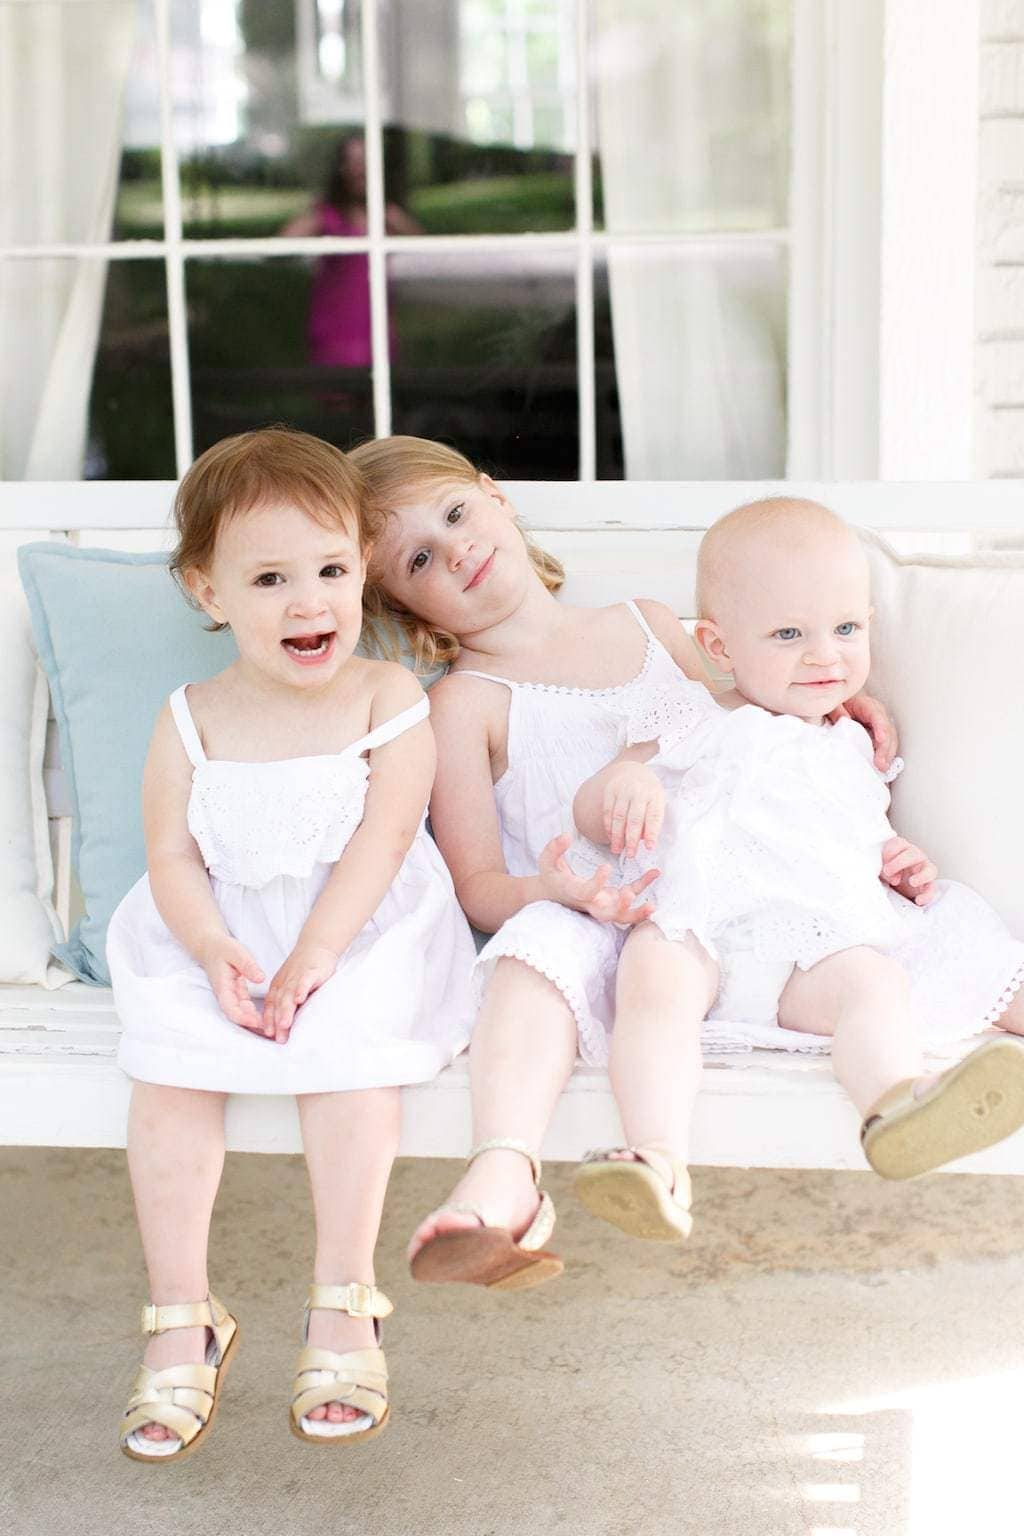 Moving? Schedule a photo session to capture the memories in your home to share with your children years from now